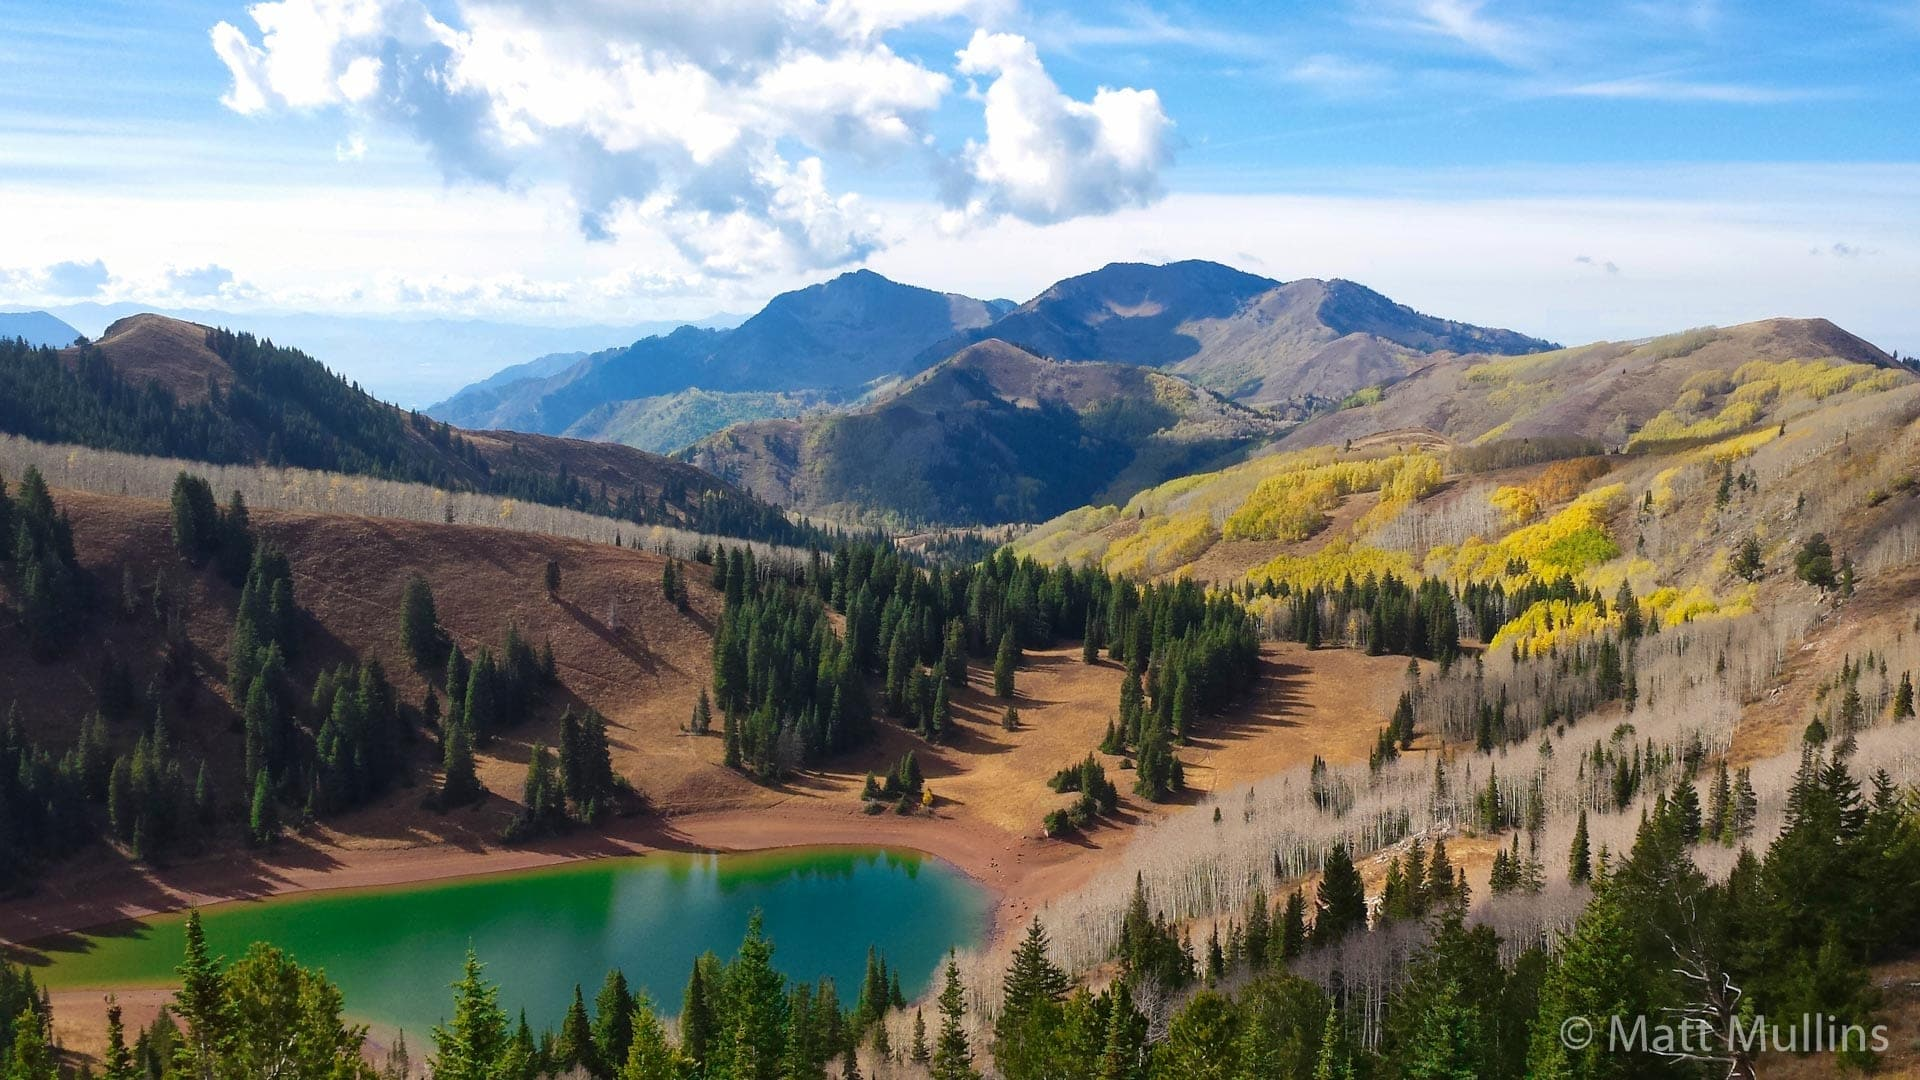 Lake Desolation in the Wasatch Mountains